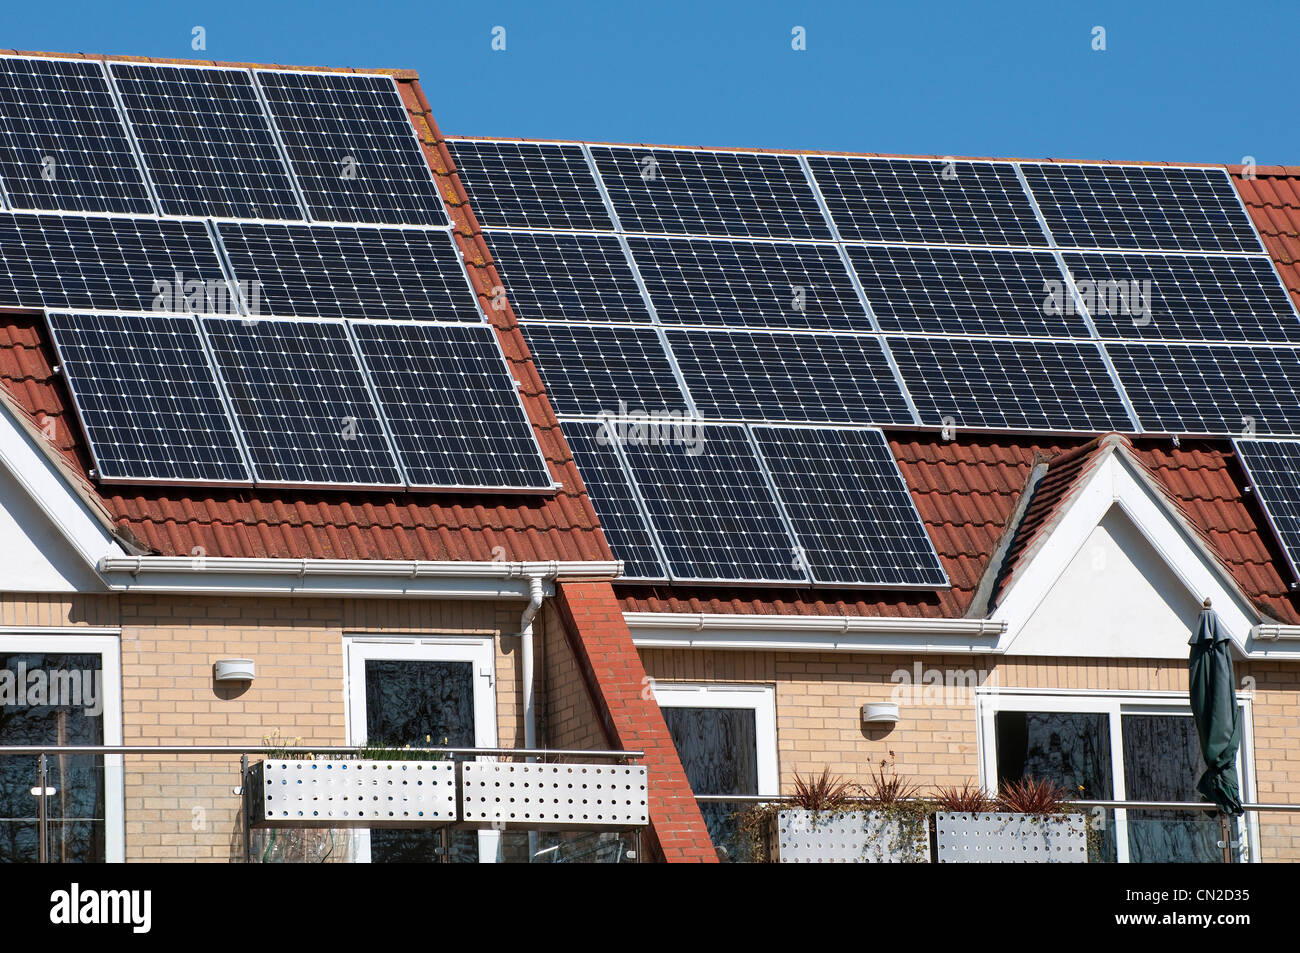 solar panels on house roof - Stock Image